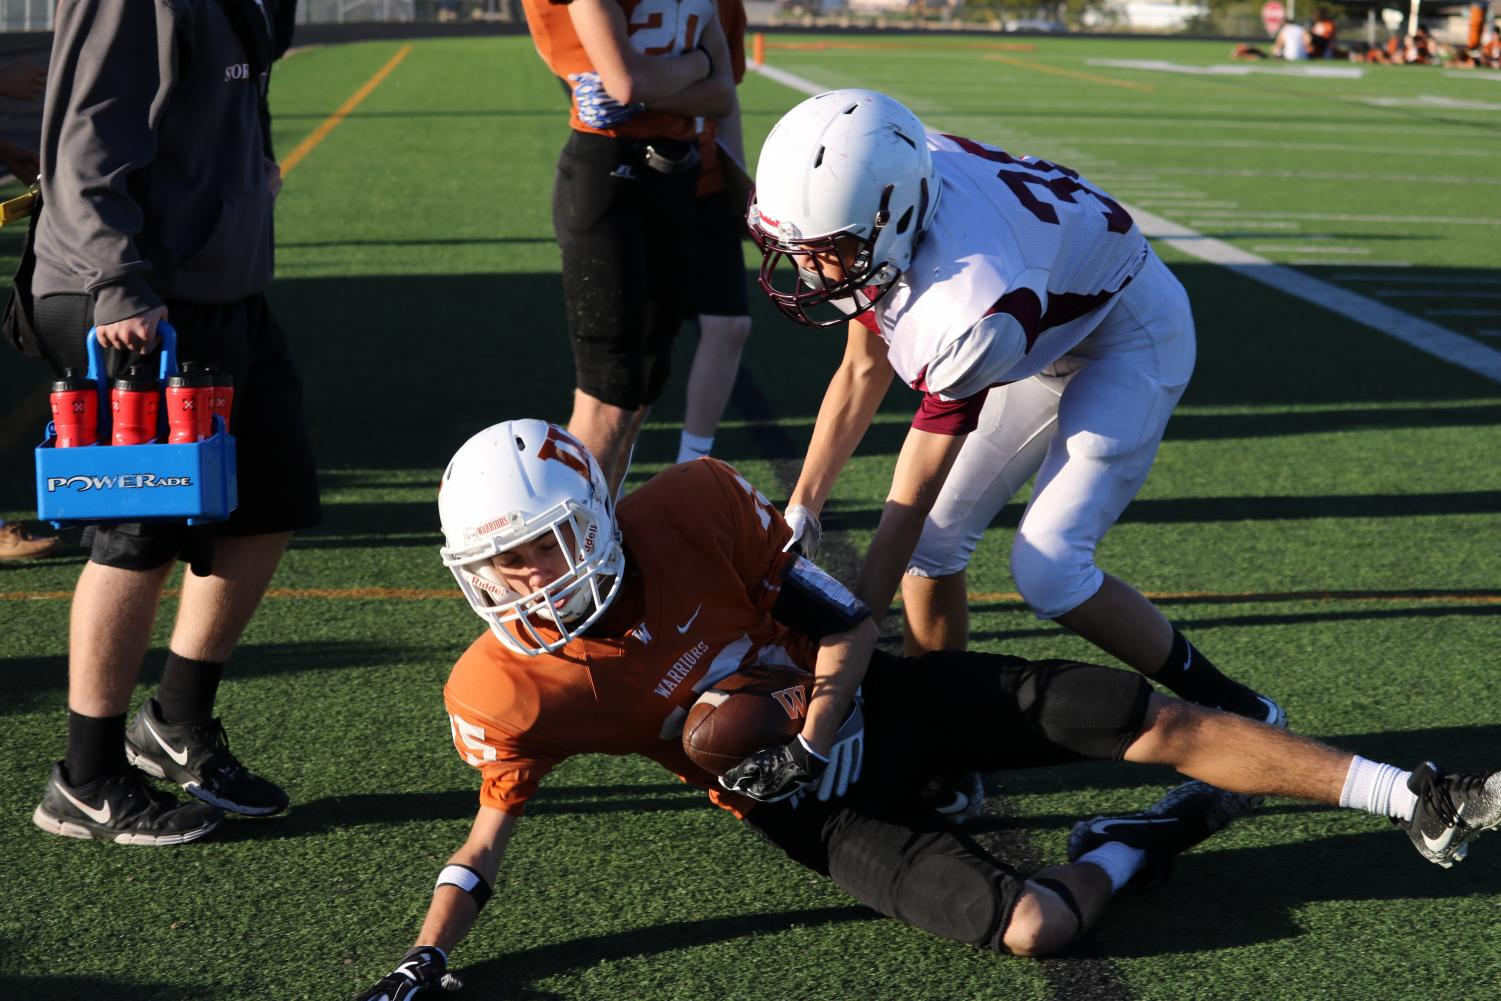 Thomas+Klein+%2721+catches+a+pass+gaining+yardage%2C+but+is+tackled+by+a+defensive+player.+